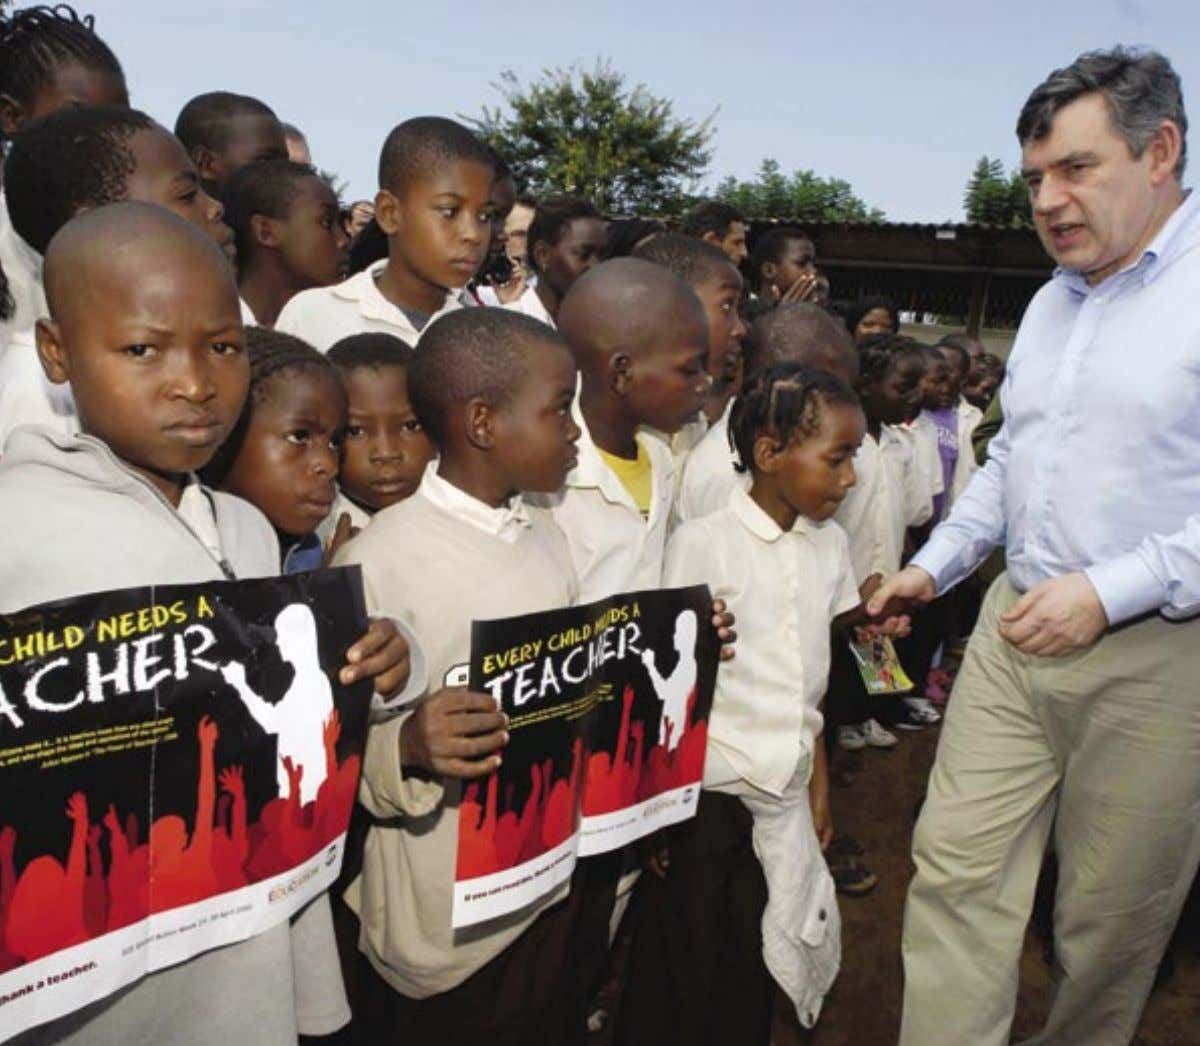 2 4 Pupils at Forces Primary School urge Gordon Brown, British Chancellor of the Exchequer, to